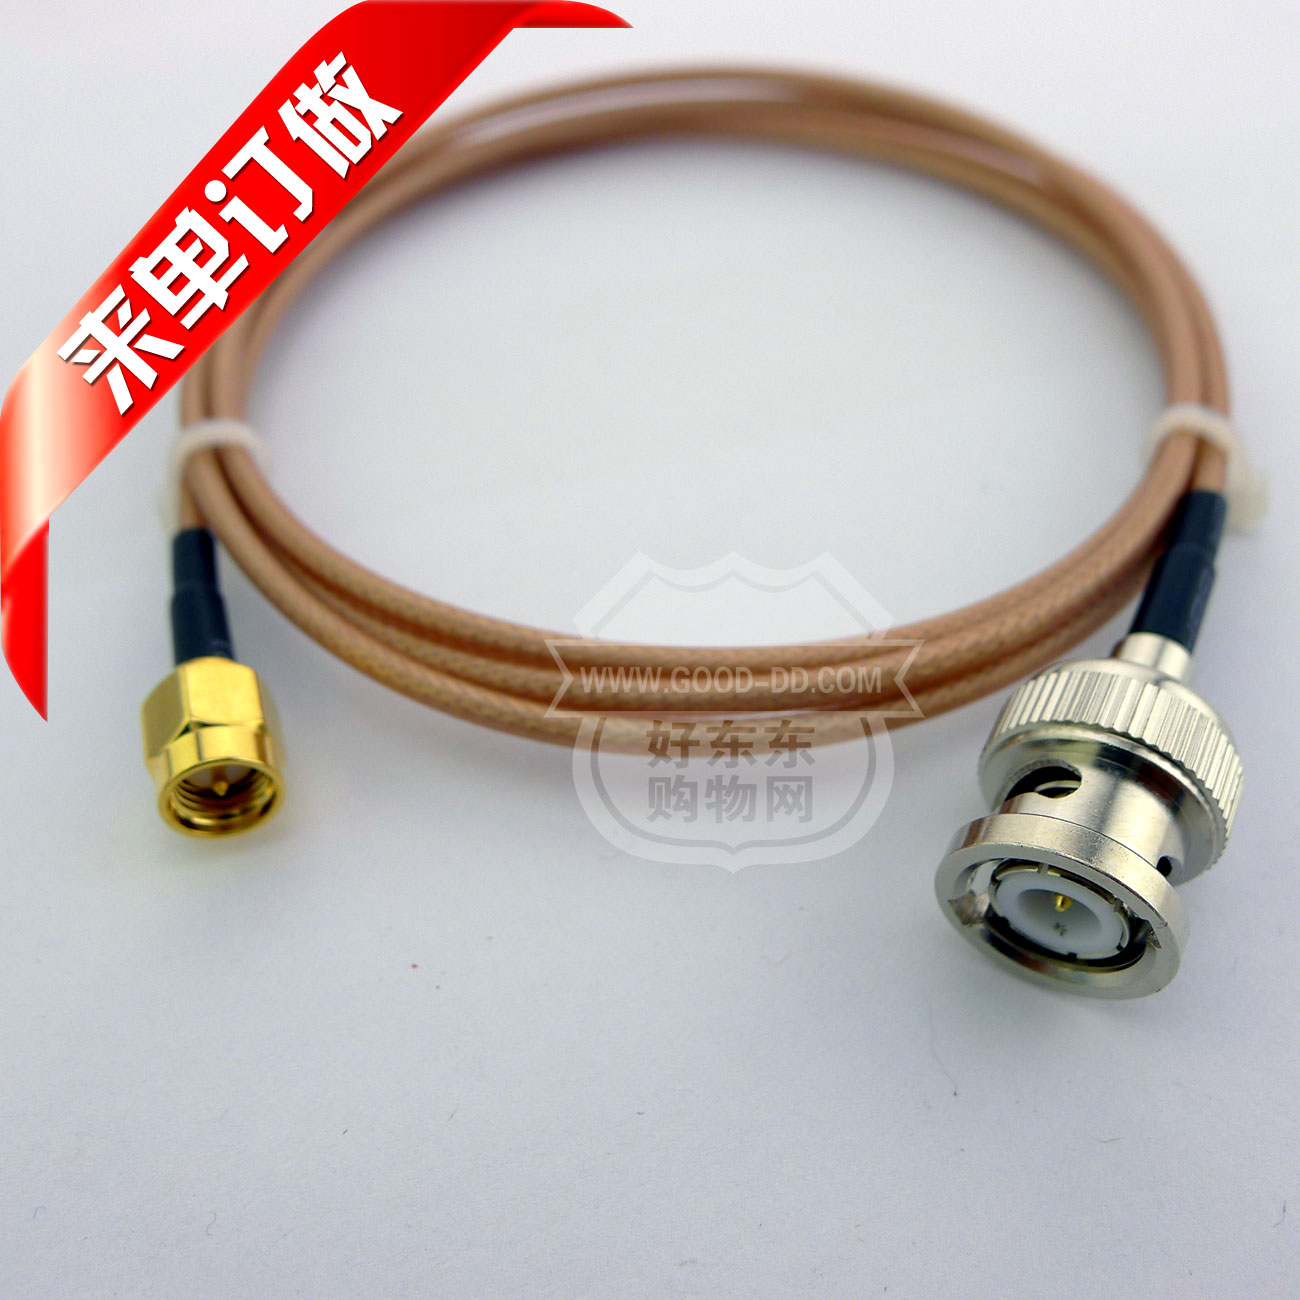 20cm SMA male to BNC male plug Antenna coax Pigtail RG316 Jumper cable 8inch<br><br>Aliexpress